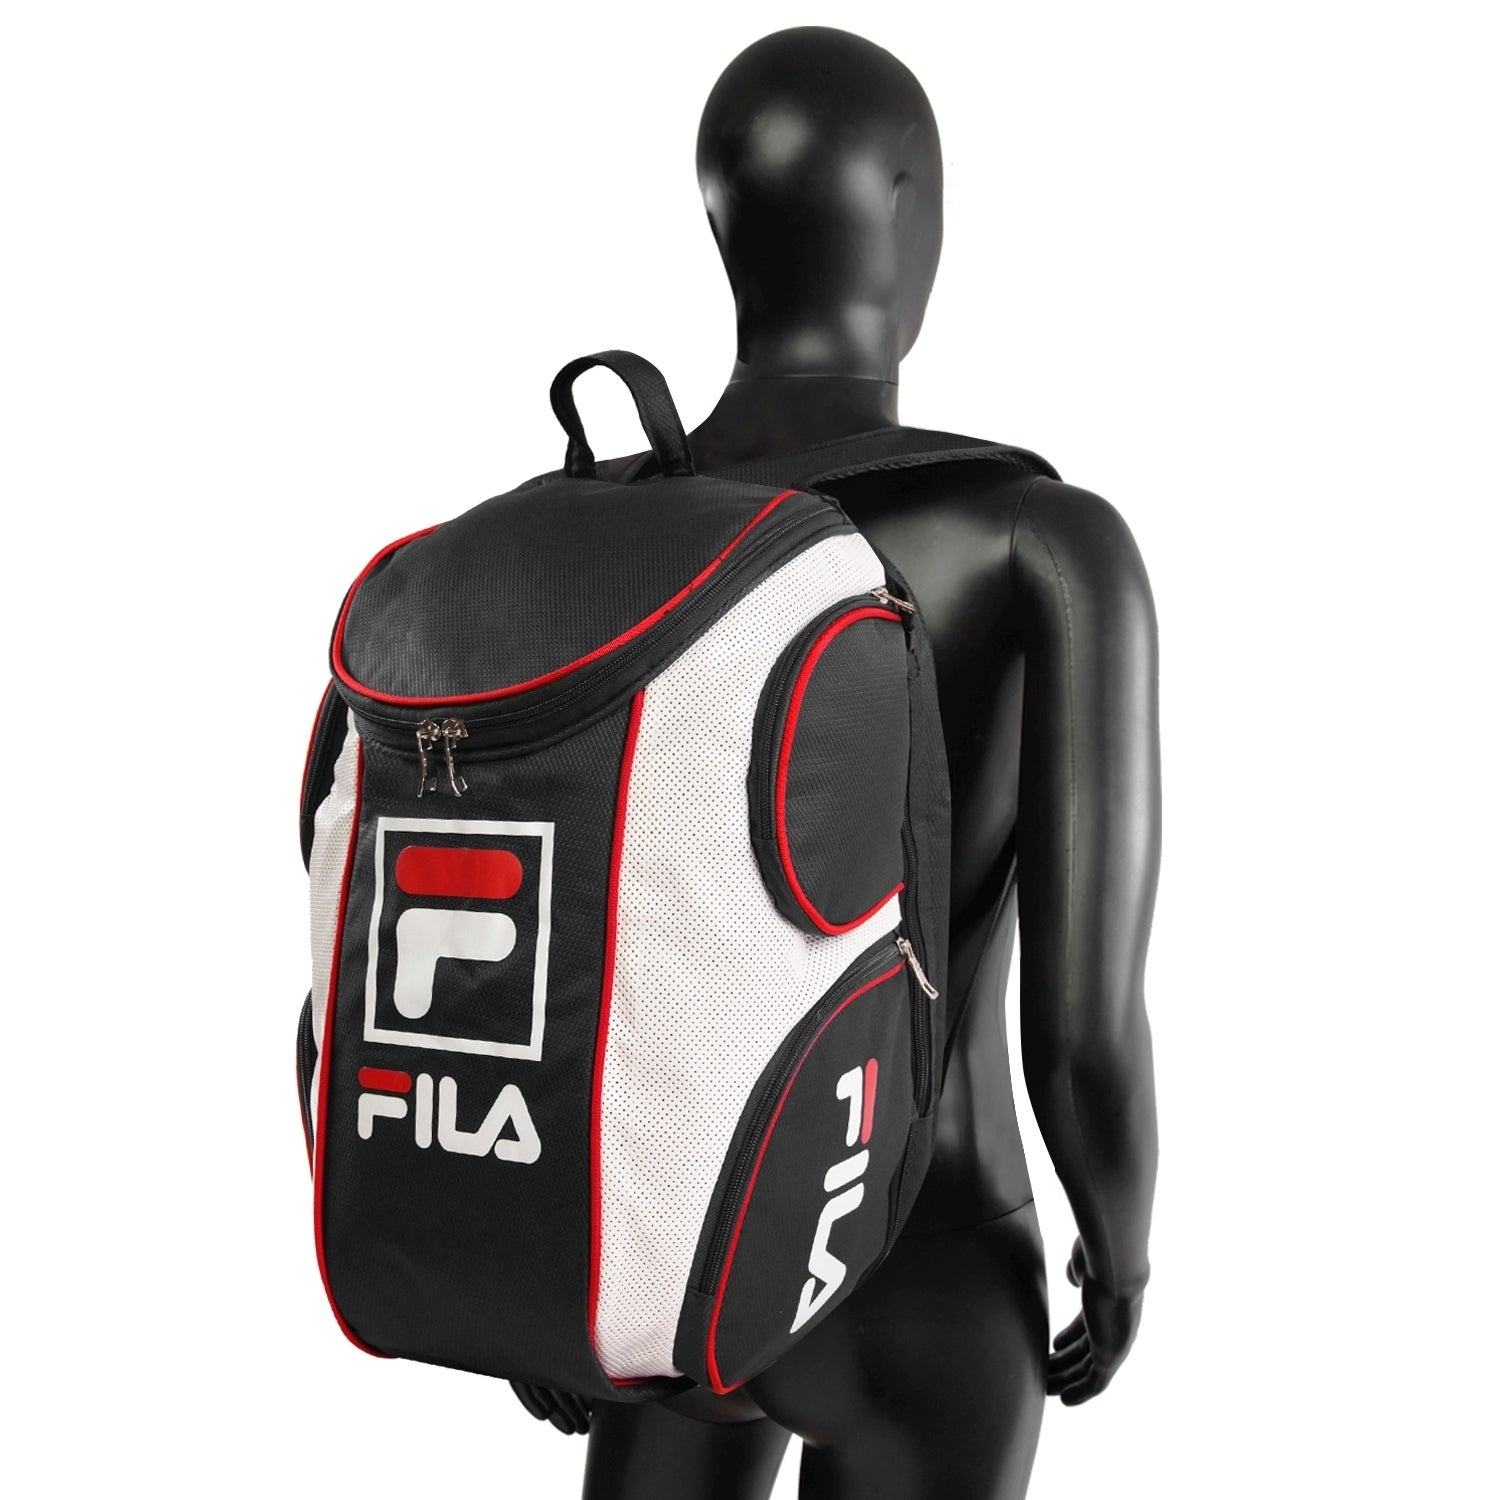 Shop Fila Heritage Tennis Backpack with Shoe Pocket - Ships To Canada -  Overstock - 23562271